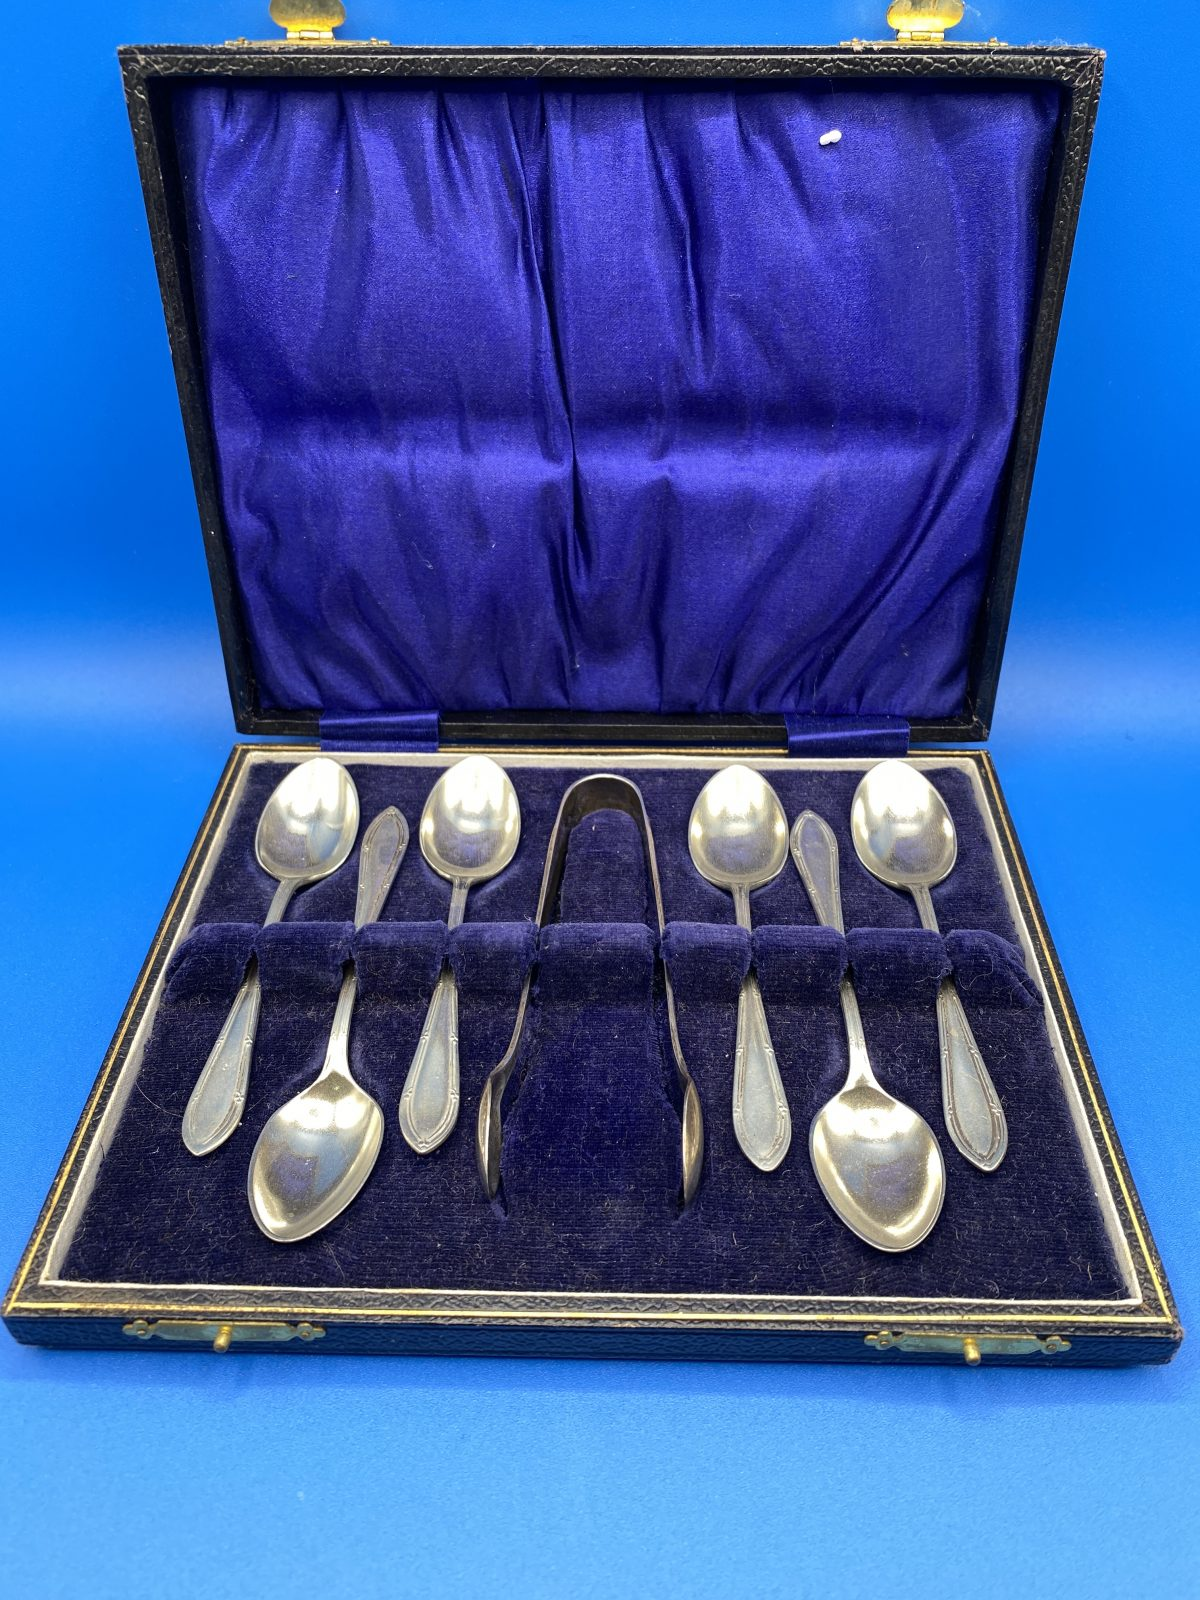 G3 - A Boxed Set of 6 Silver Plated Coffee Spoons and Tongs.  £38